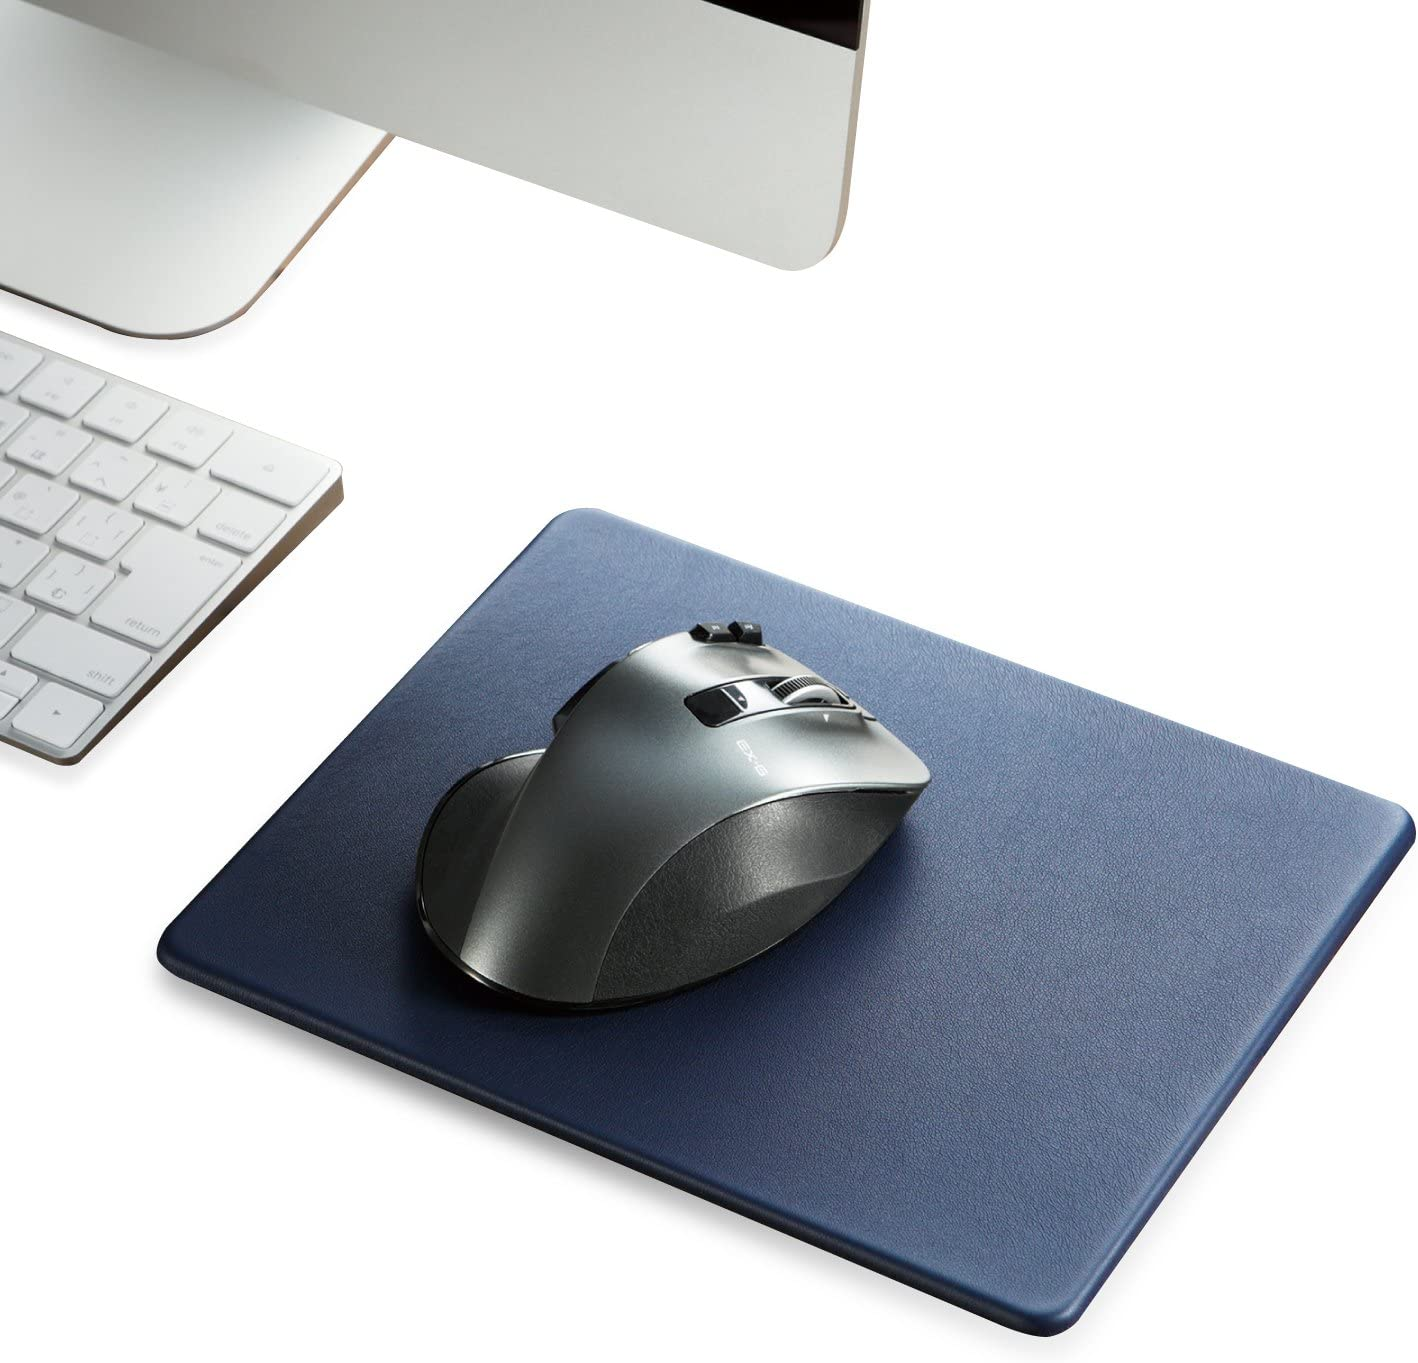 ELECOM Soft Leather Mouse Pad Reservation Large Skid Sale Special Price PU Anti So Size